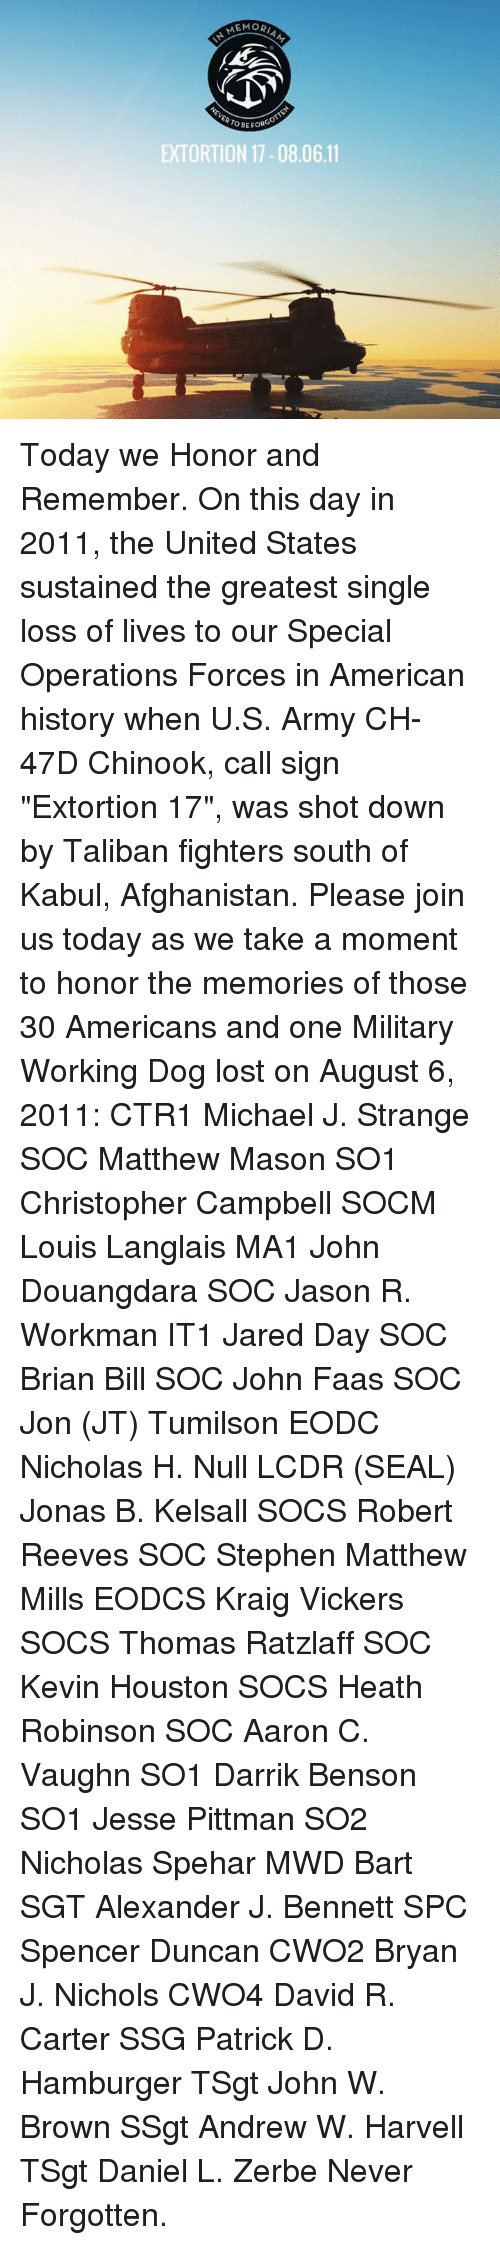 "Memes, Stephen, and Lost: MORIAM  OBE FORGO  EXTORTION 17-08.06.11 Today we Honor and Remember.   On this day in 2011, the United States sustained the greatest single loss of lives to our Special Operations Forces in American history when U.S. Army CH-47D Chinook, call sign ""Extortion 17"", was shot down by Taliban fighters south of Kabul, Afghanistan.  Please join us today as we take a moment to honor the memories of those 30 Americans and one Military Working Dog lost on August 6, 2011:  CTR1 Michael J. Strange SOC Matthew Mason SO1 Christopher Campbell SOCM Louis Langlais MA1 John Douangdara SOC Jason R. Workman IT1 Jared Day SOC Brian Bill SOC John Faas SOC Jon (JT) Tumilson EODC Nicholas H. Null LCDR (SEAL) Jonas B. Kelsall SOCS Robert Reeves SOC Stephen Matthew Mills EODCS Kraig Vickers SOCS Thomas Ratzlaff SOC Kevin Houston SOCS Heath Robinson SOC Aaron C. Vaughn SO1 Darrik Benson SO1 Jesse Pittman SO2 Nicholas Spehar MWD Bart SGT Alexander J. Bennett SPC Spencer Duncan CWO2 Bryan J. Nichols CWO4 David R. Carter SSG Patrick D. Hamburger TSgt John W. Brown SSgt Andrew W. Harvell TSgt Daniel L. Zerbe  Never Forgotten."